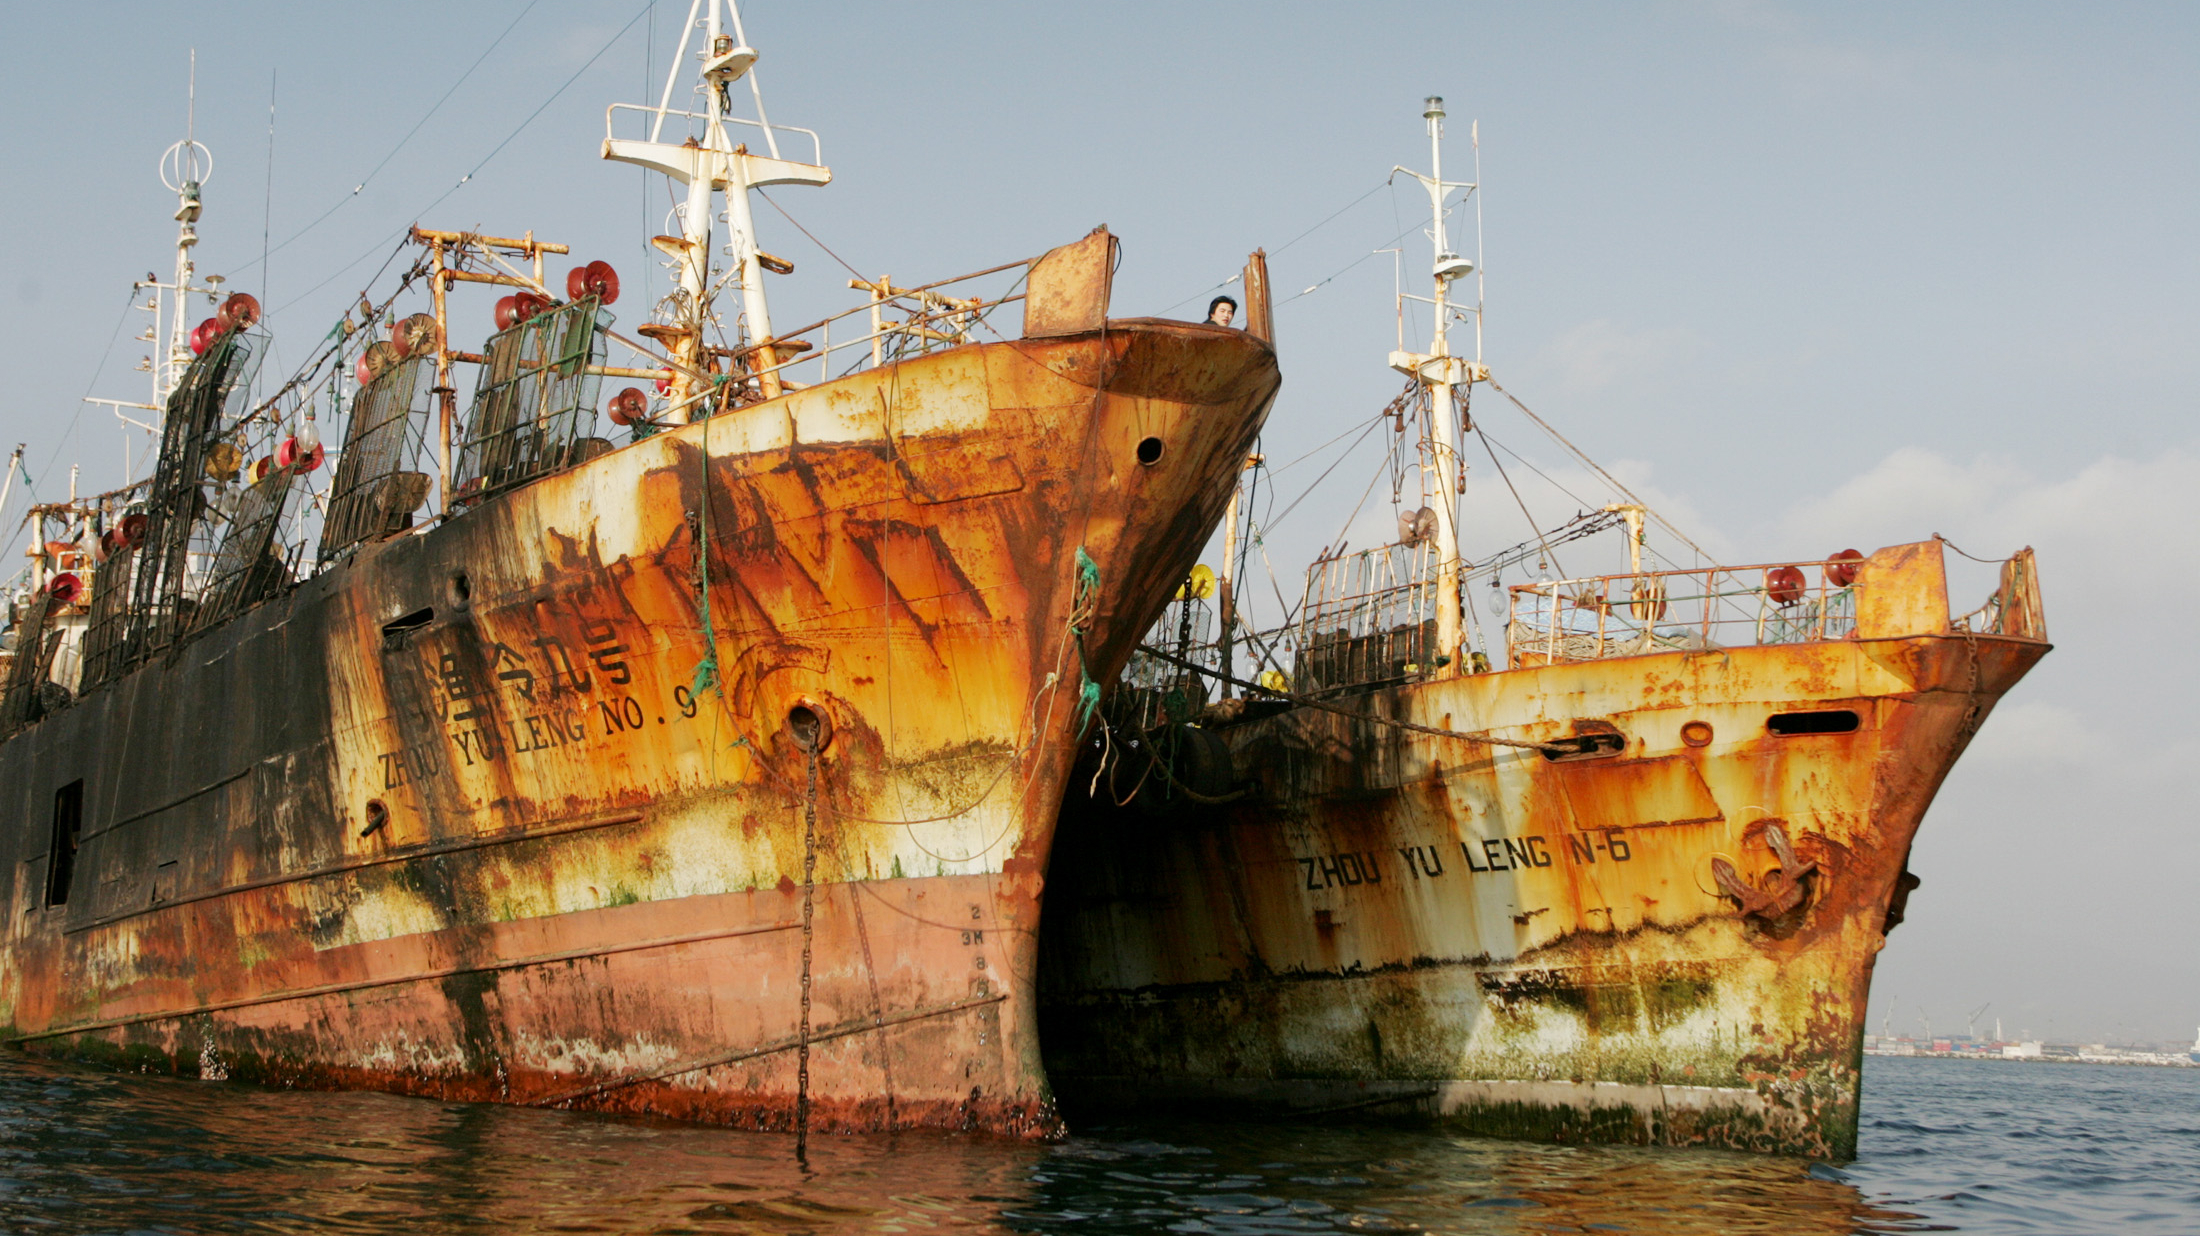 Two of the nine Chinese vessels caught by Peruvian navy are anchored in the port of Callao, November 24, 2004. Peruvian authorities seized nine Chinese vessels on November 19, allegedly fishing illegally six miles within Peru's territorial waters. The fleet was seized and escorted to the port of Callao in Lima. 192 crewmembers will remain on board arrested vessels until investigations are concluded. REUTERS/Mariana Bazo MB